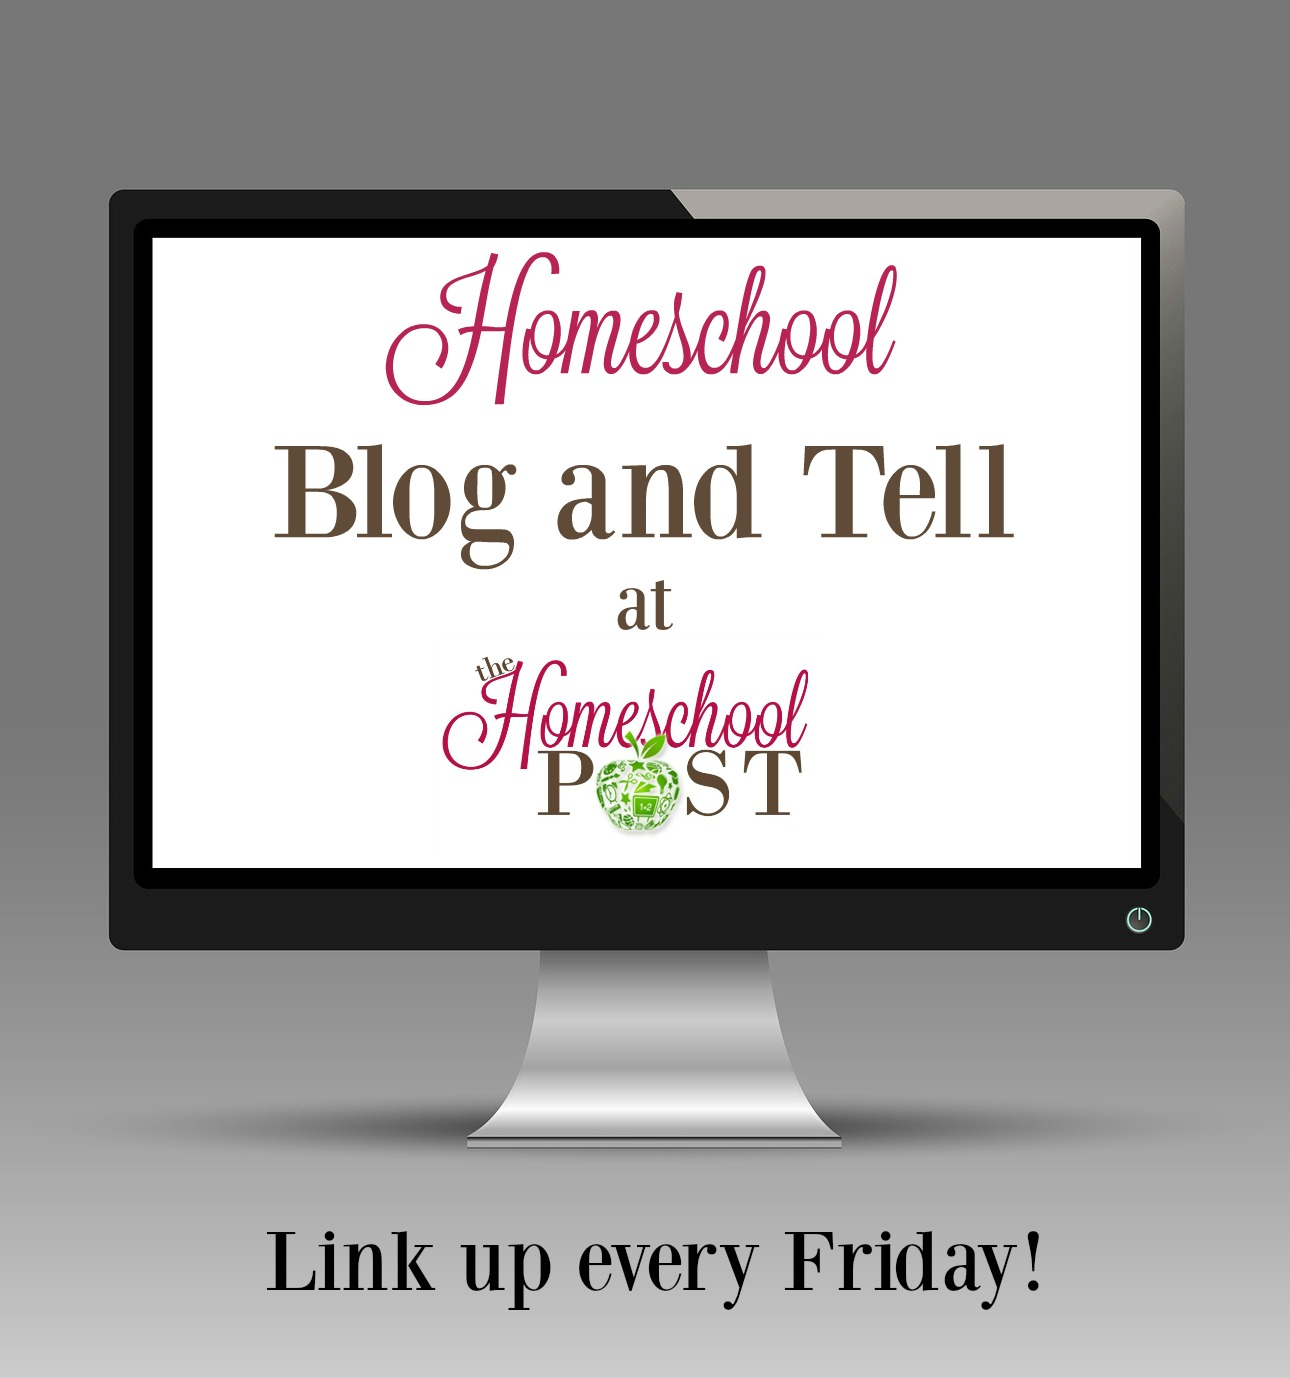 Share your blog posts in the weekly Homeschool Blog and Tell at hsbapost.com